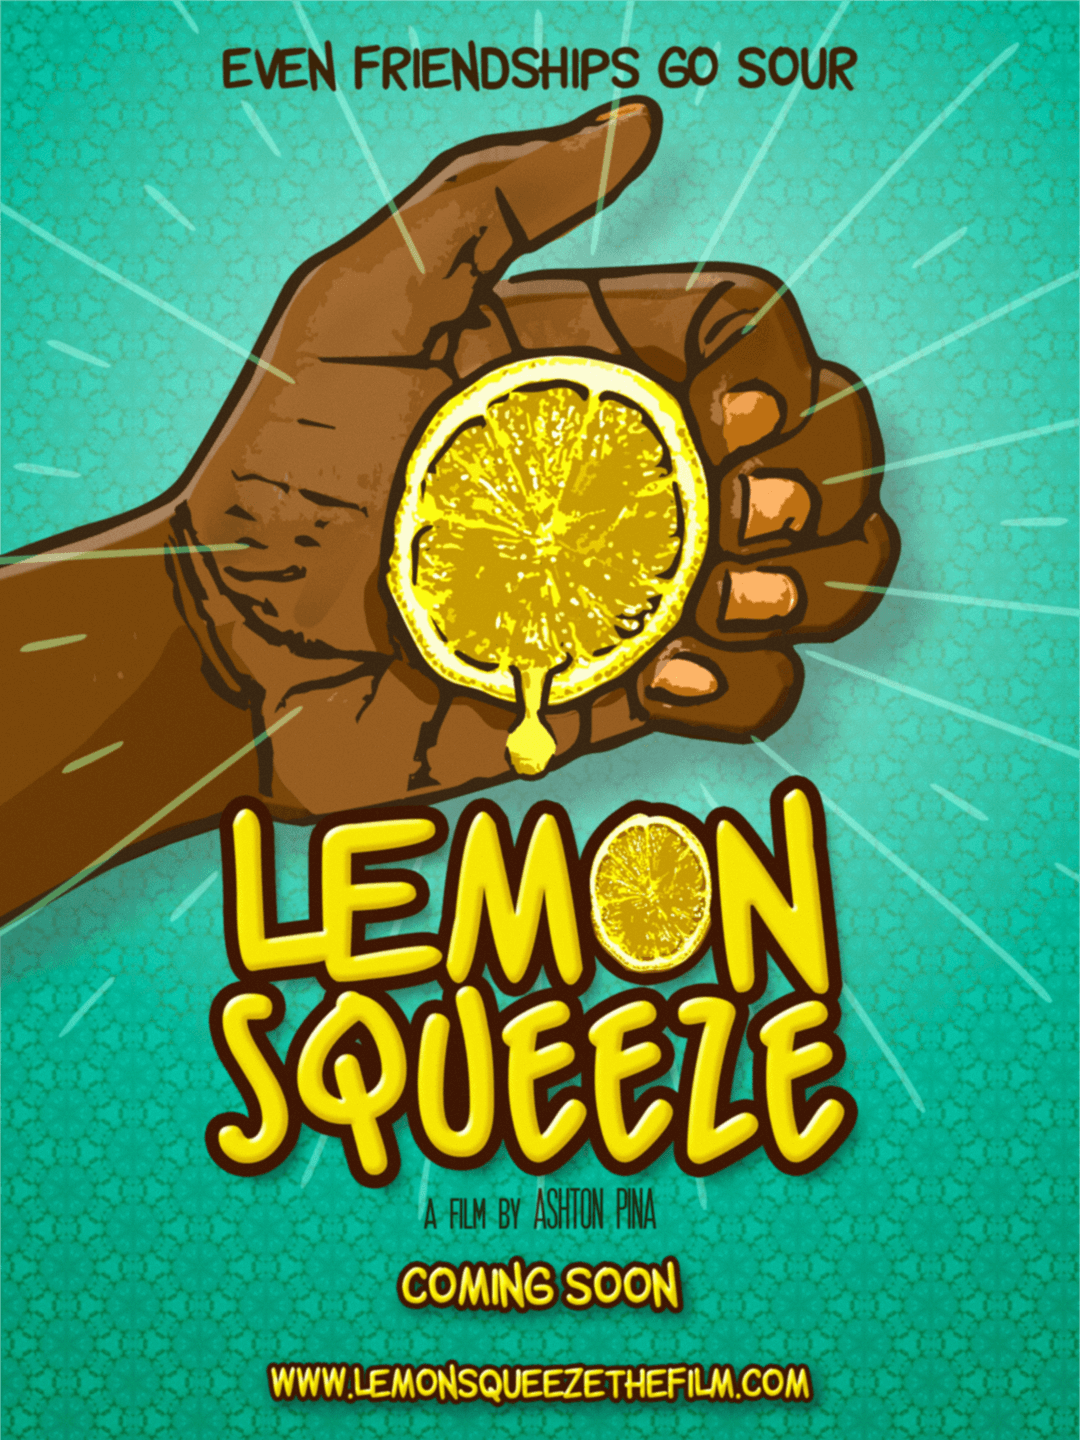 Lemon Squeeze